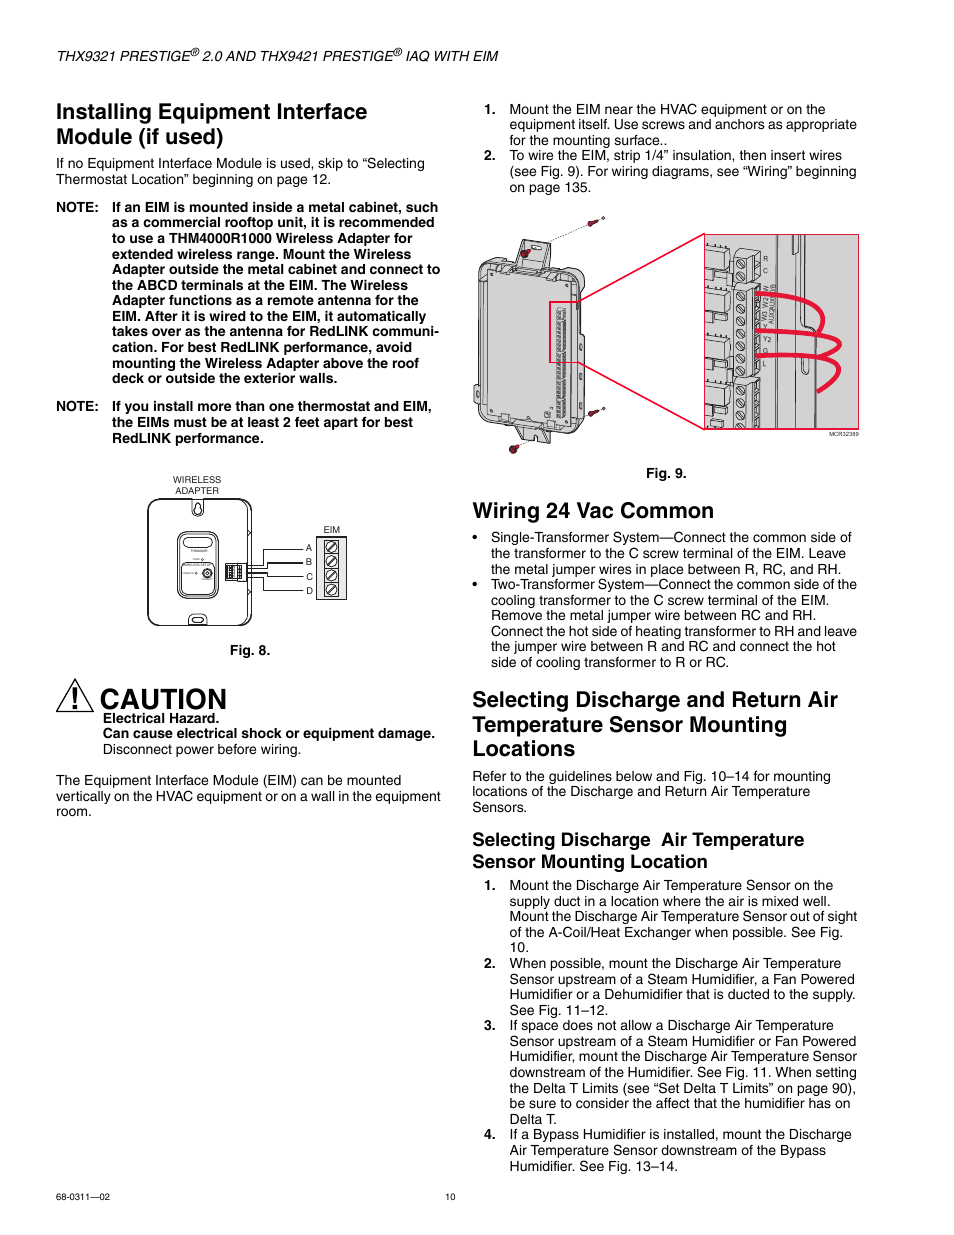 medium resolution of installing equipment interface module if used wiring 24 vac common mounting locations